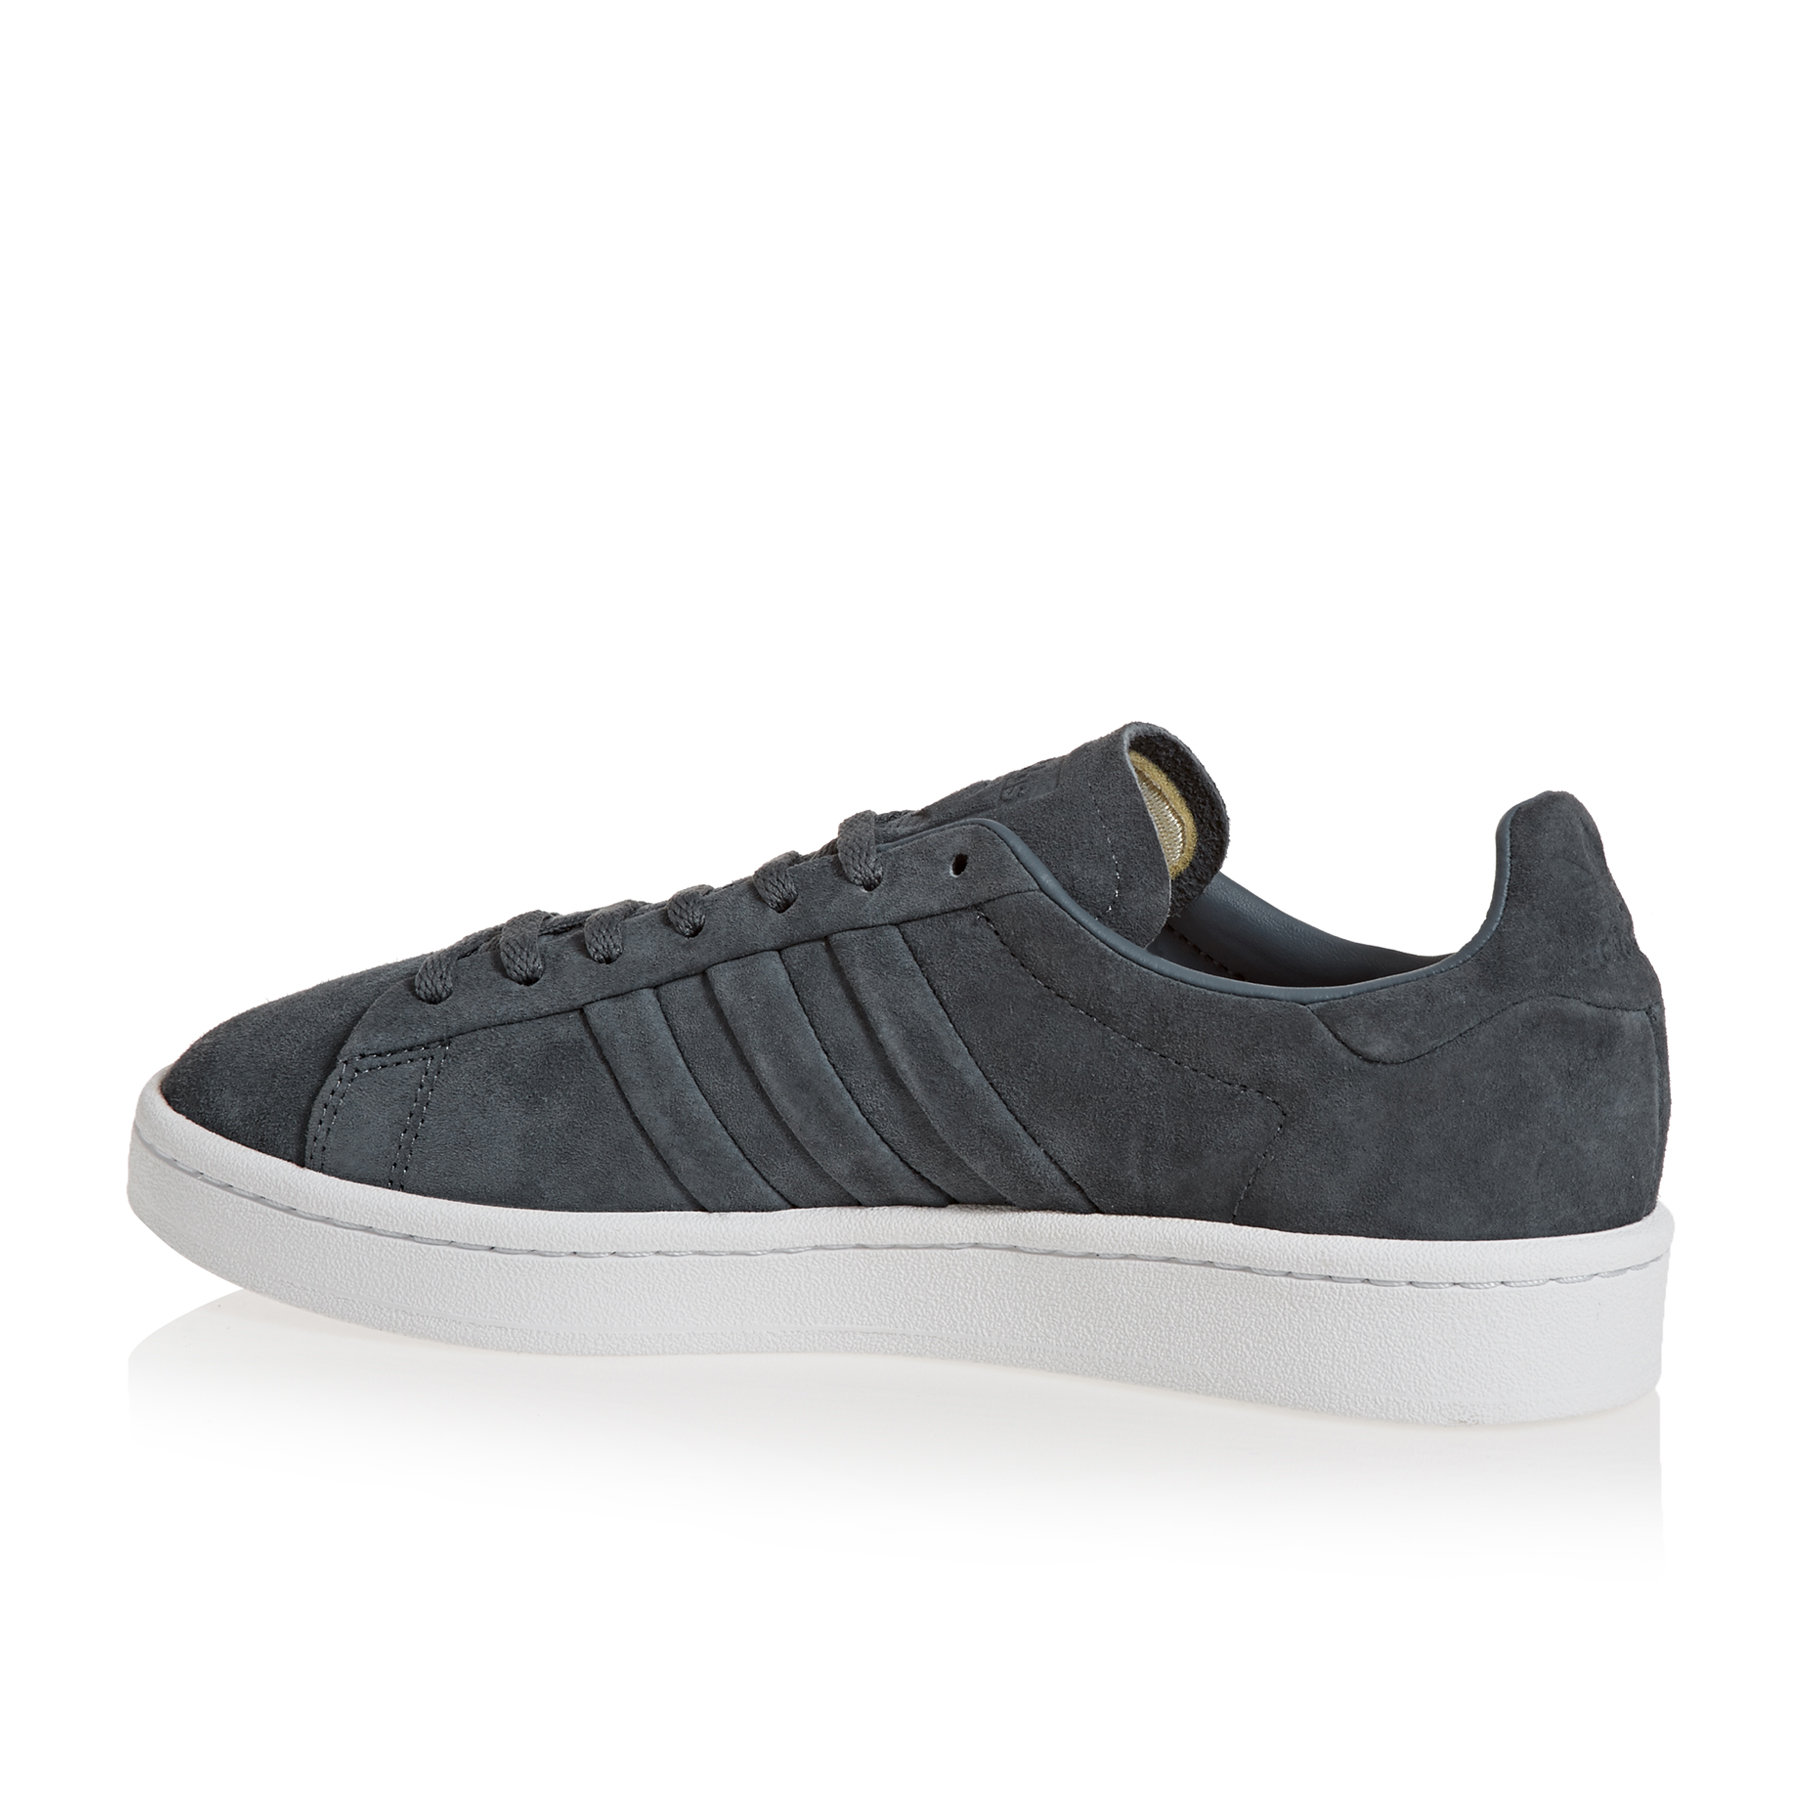 Sapatilhas Adidas Campus Stitch and Turn